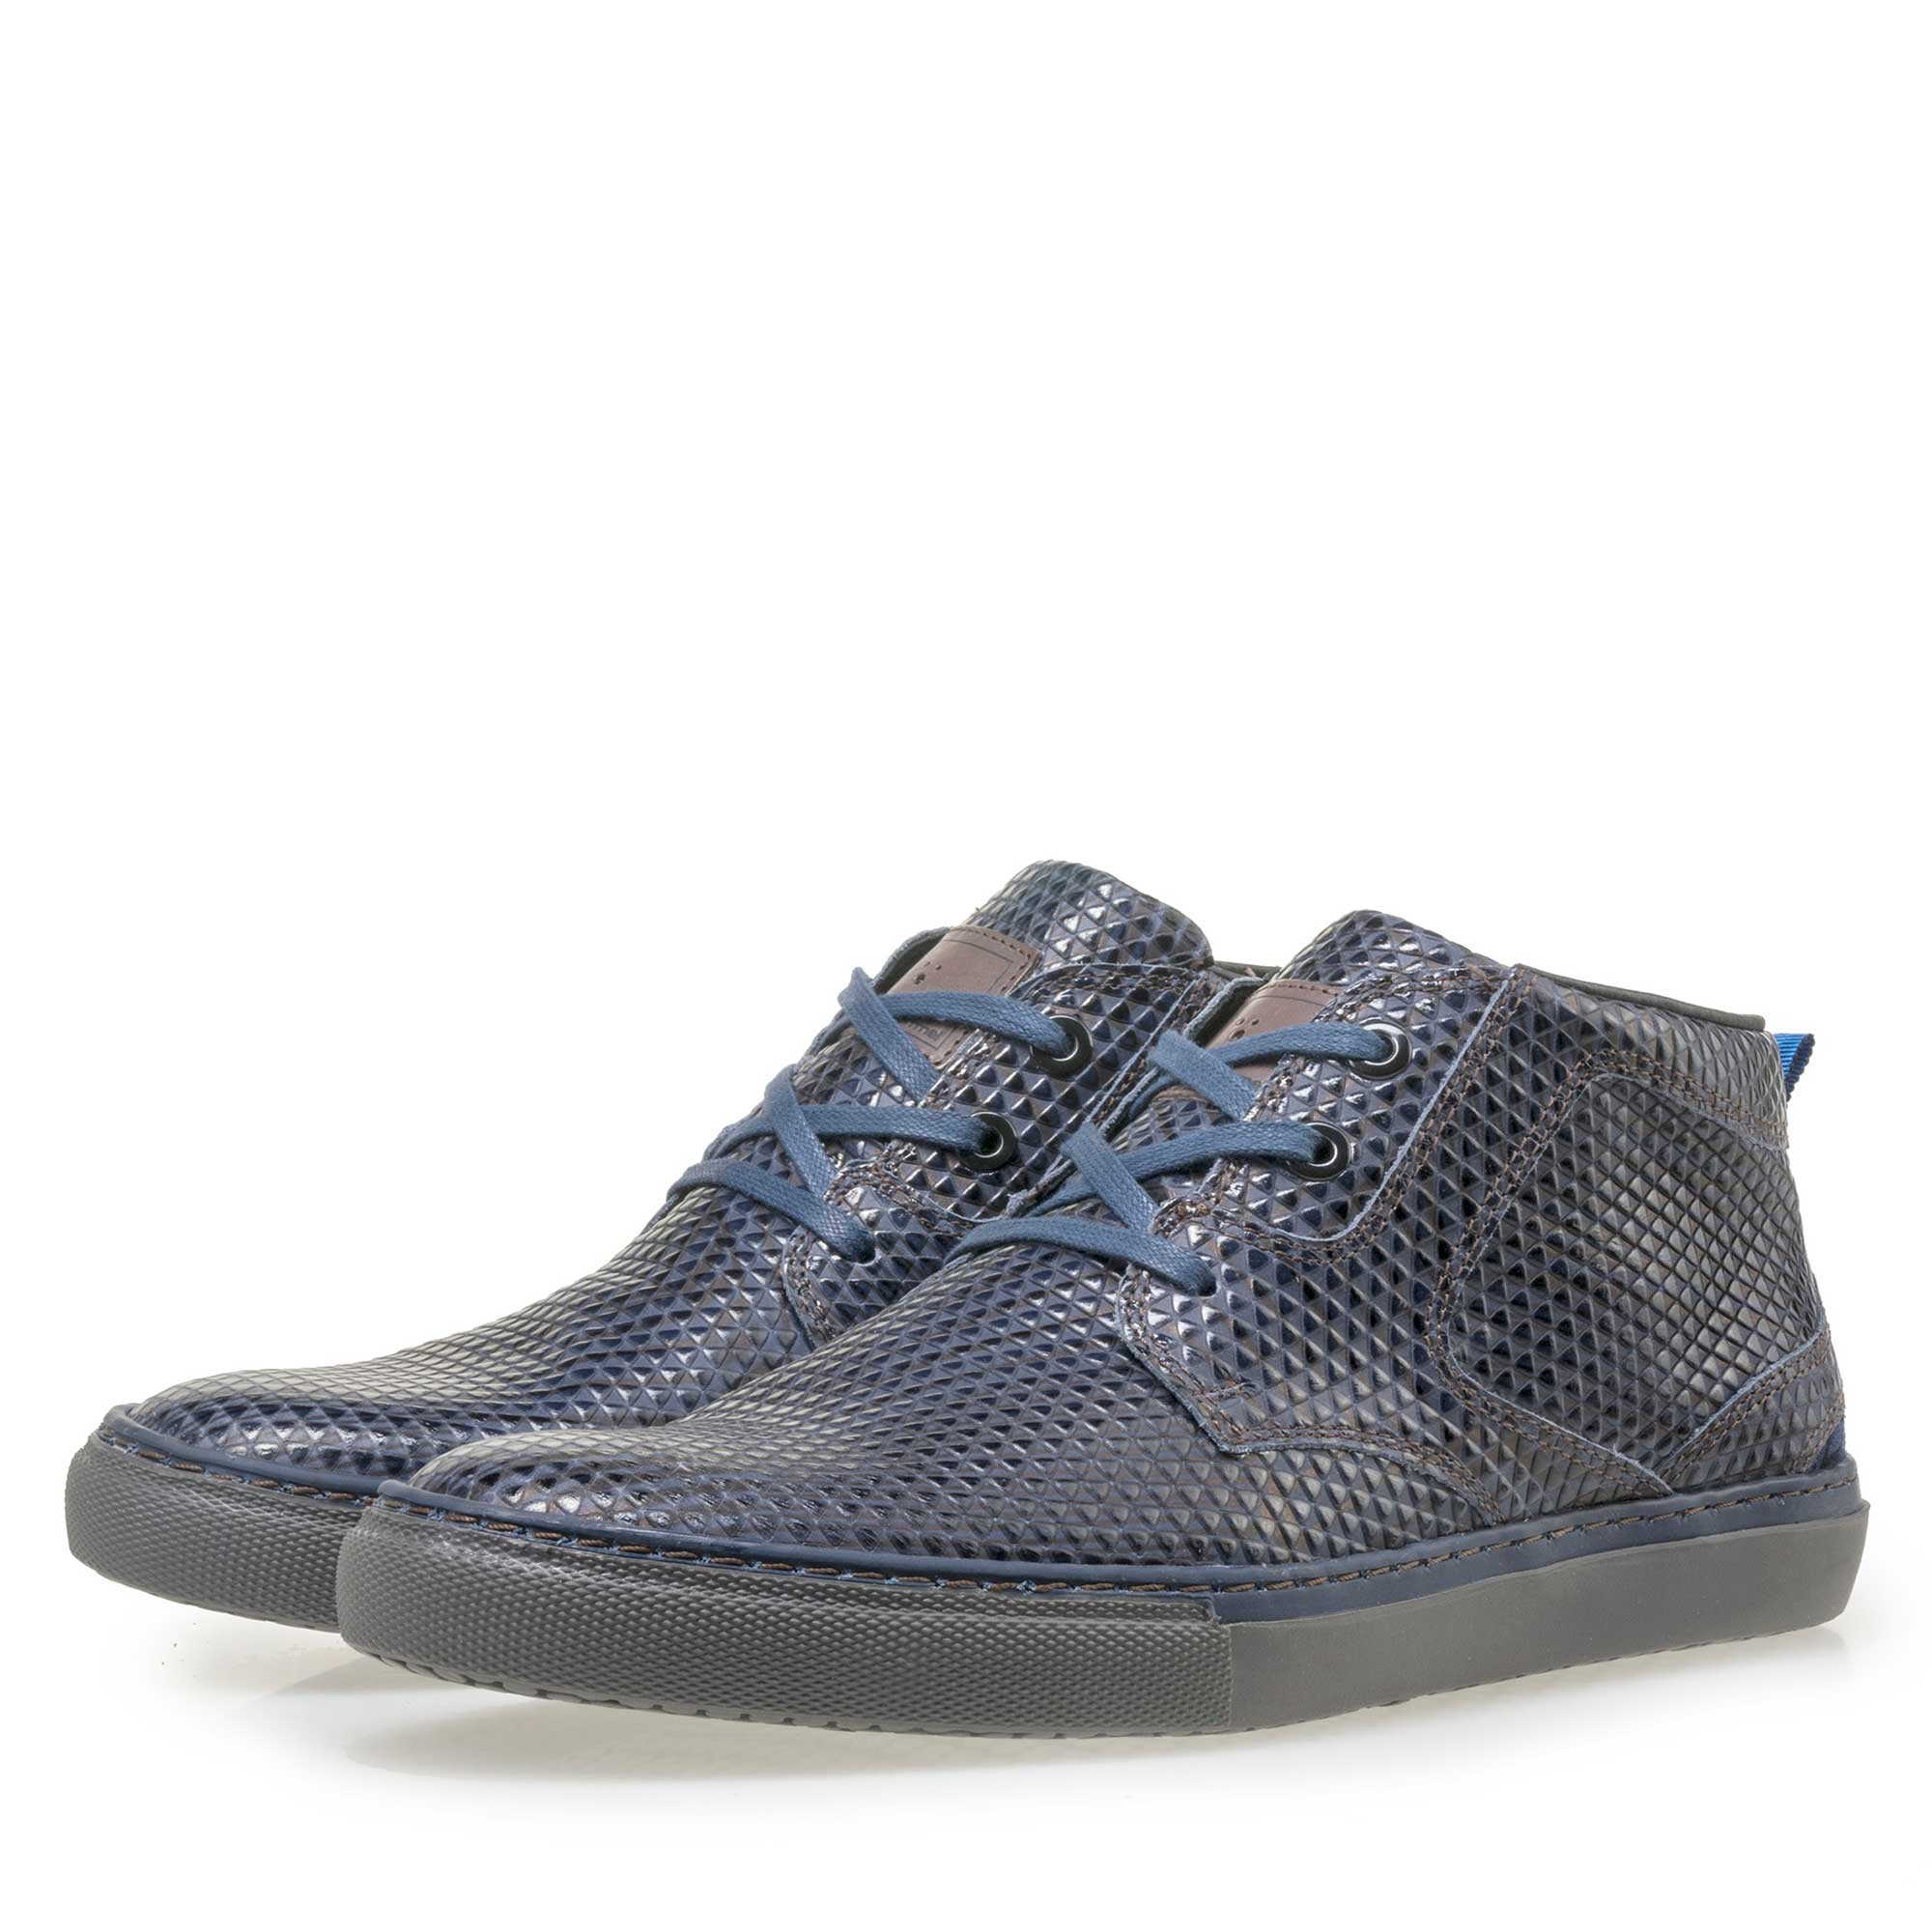 10945/09 - Floris van Bommel men's blue leather lace boot finished with a striped pattern